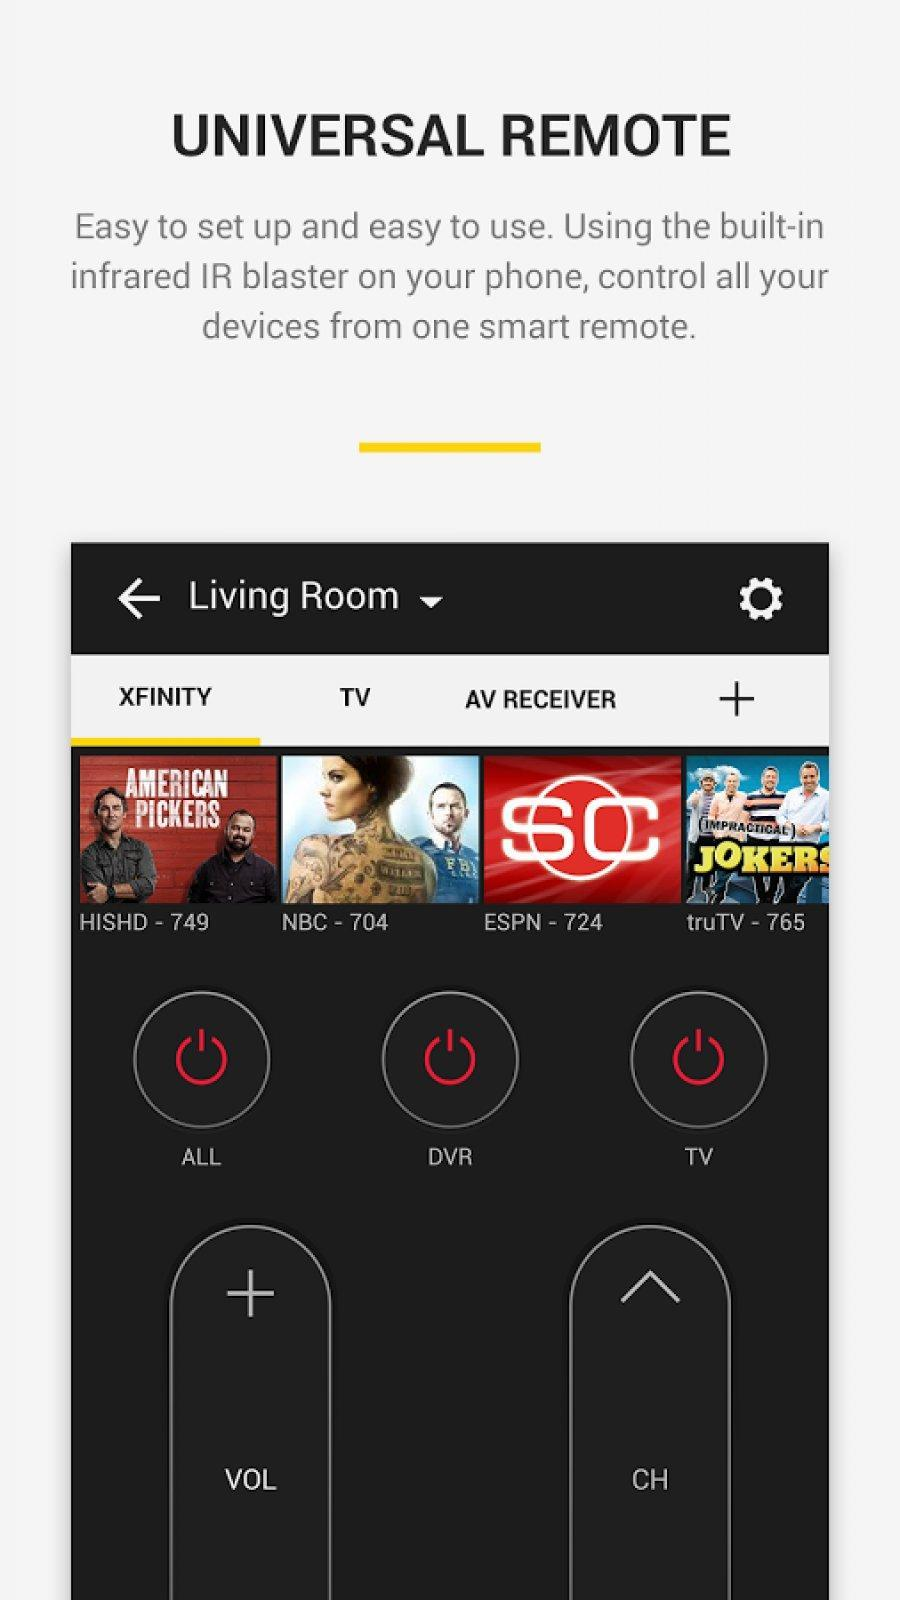 Panasonic TV Remote Control for Android - APK Download